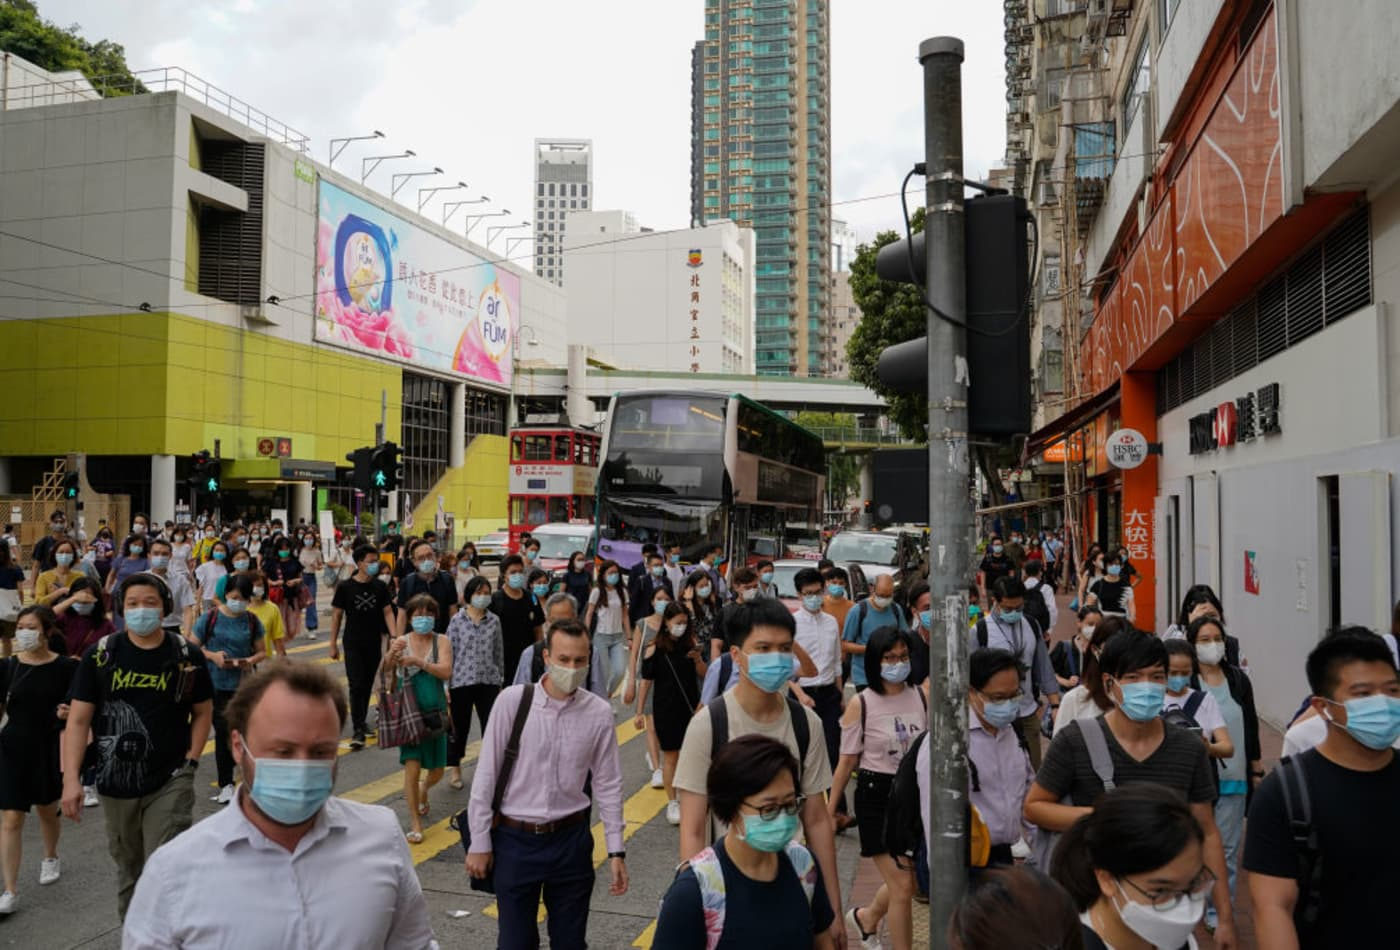 Hong Kong issues arrest warrant for U.S. citizen under new national security law